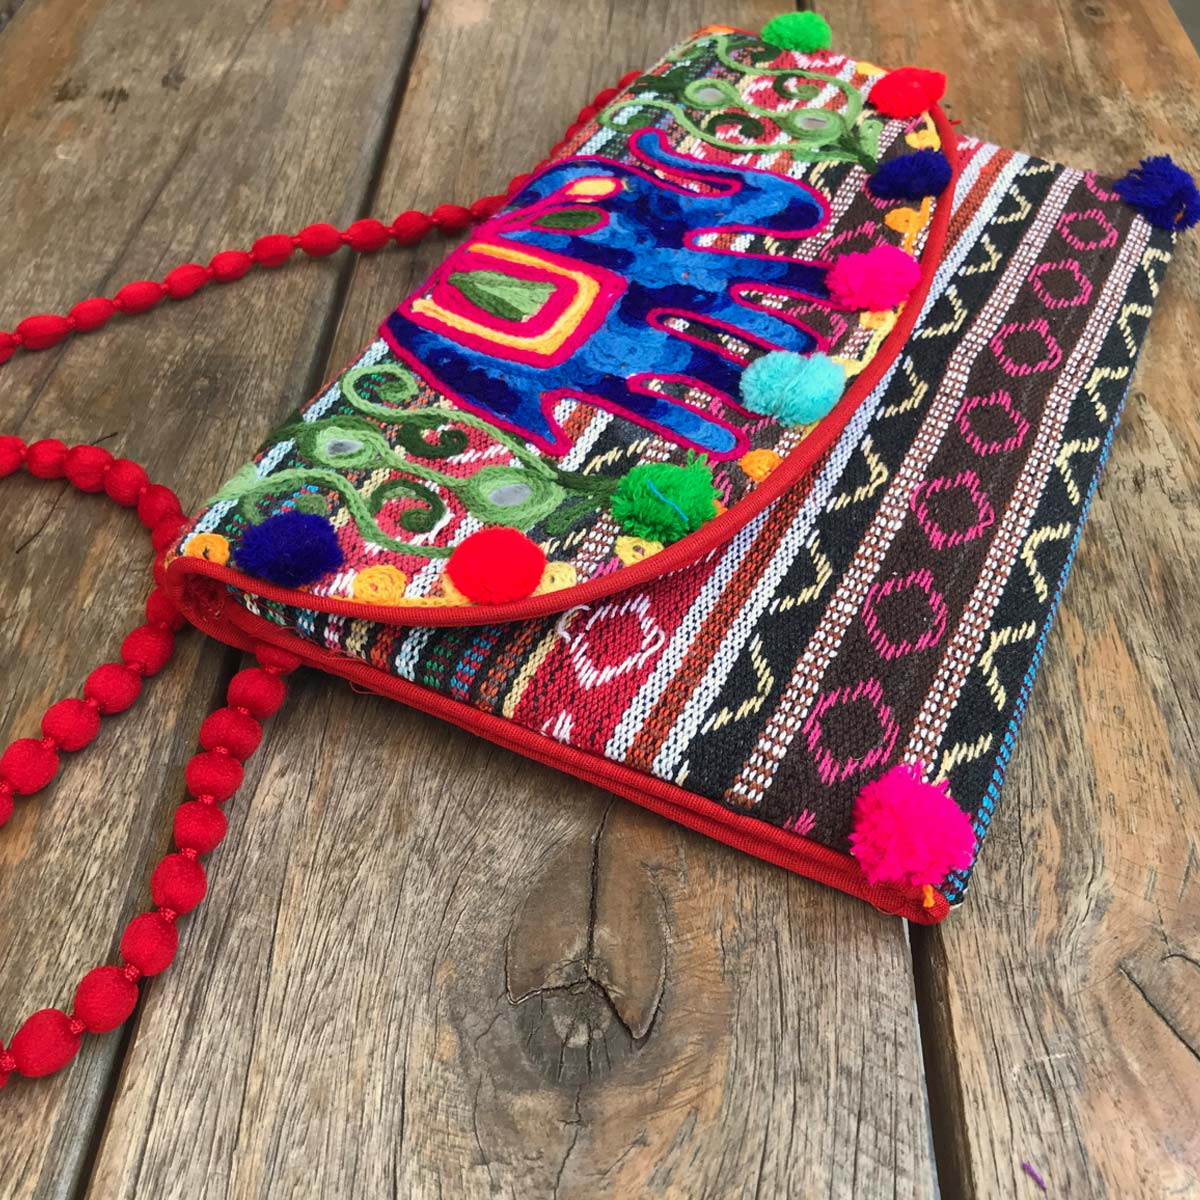 BOLSA INDIANA BOHO CHIC COLORIDA